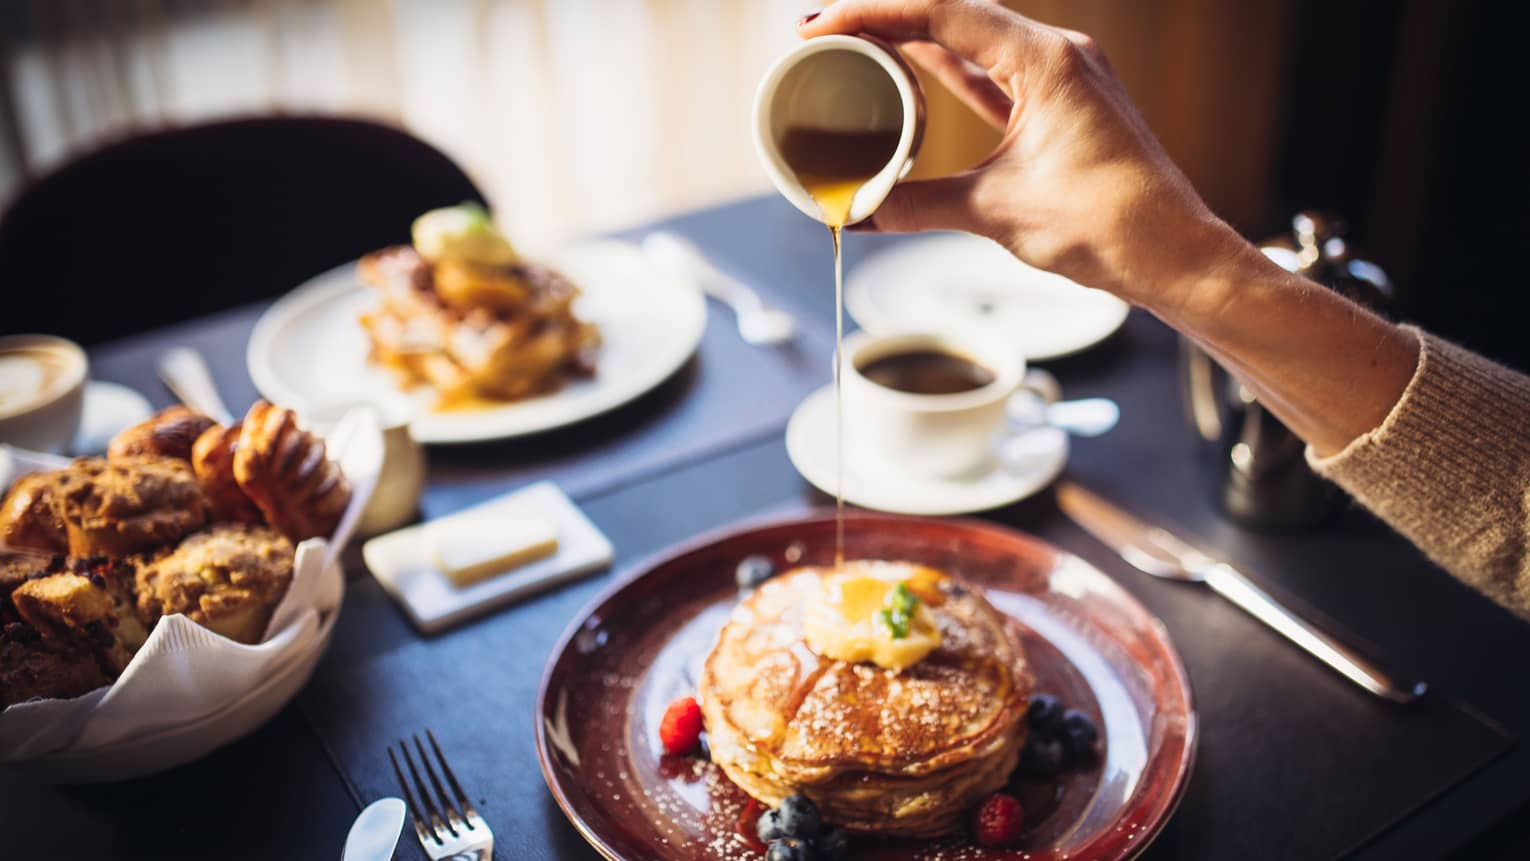 Close-up of hand pouring syrup over stack of pancakes on dining table by pastry basket, coffee